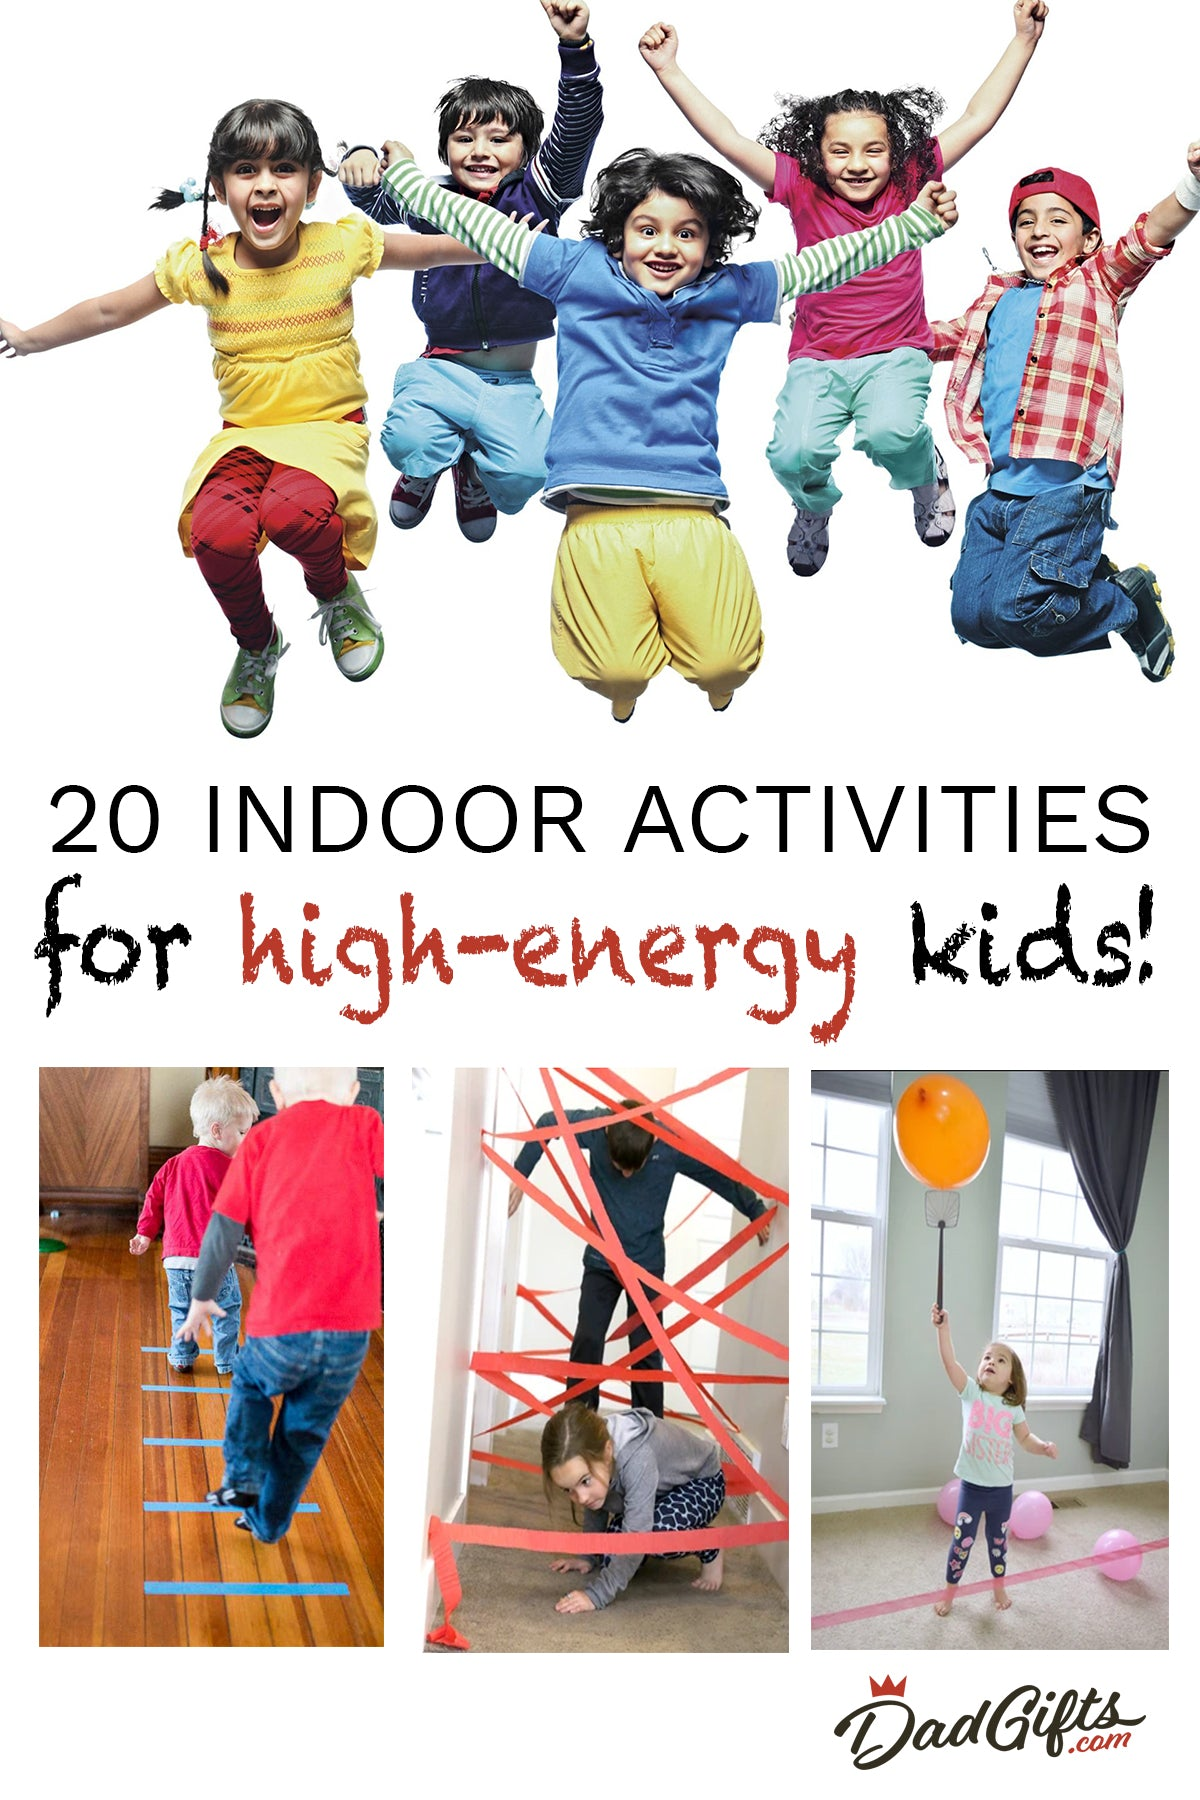 20 Indoor Activities for High-Energy Kids!